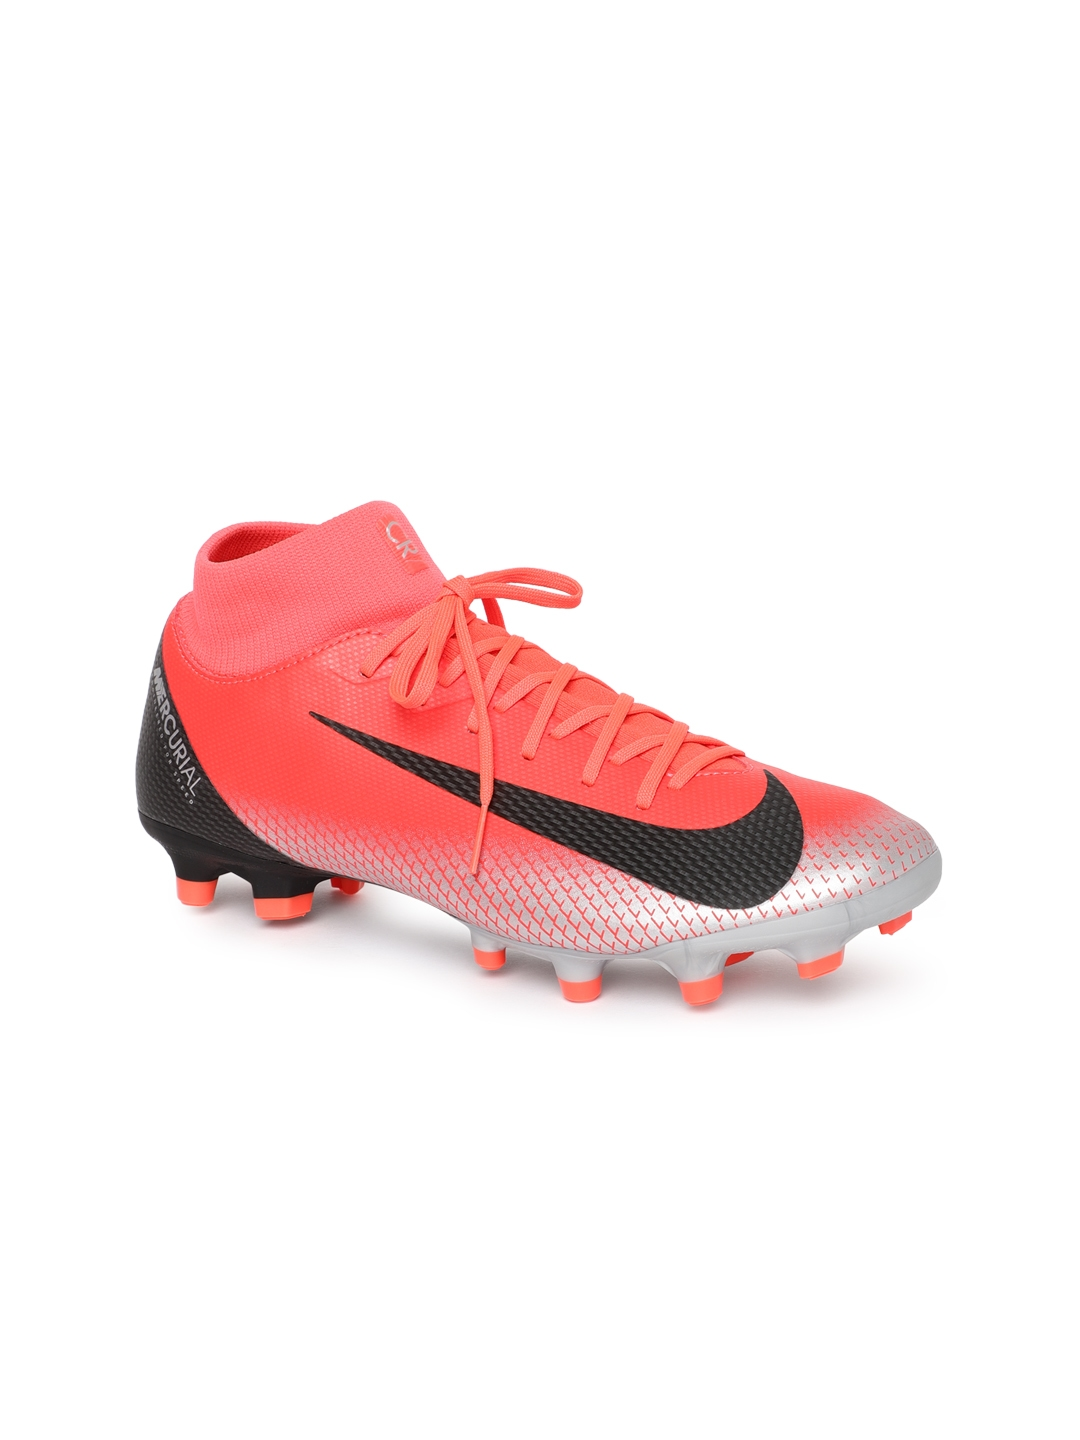 26c4cd196 Buy Nike Unisex Red Superfly 6 Academy CR7 FG MG Football Shoes ...